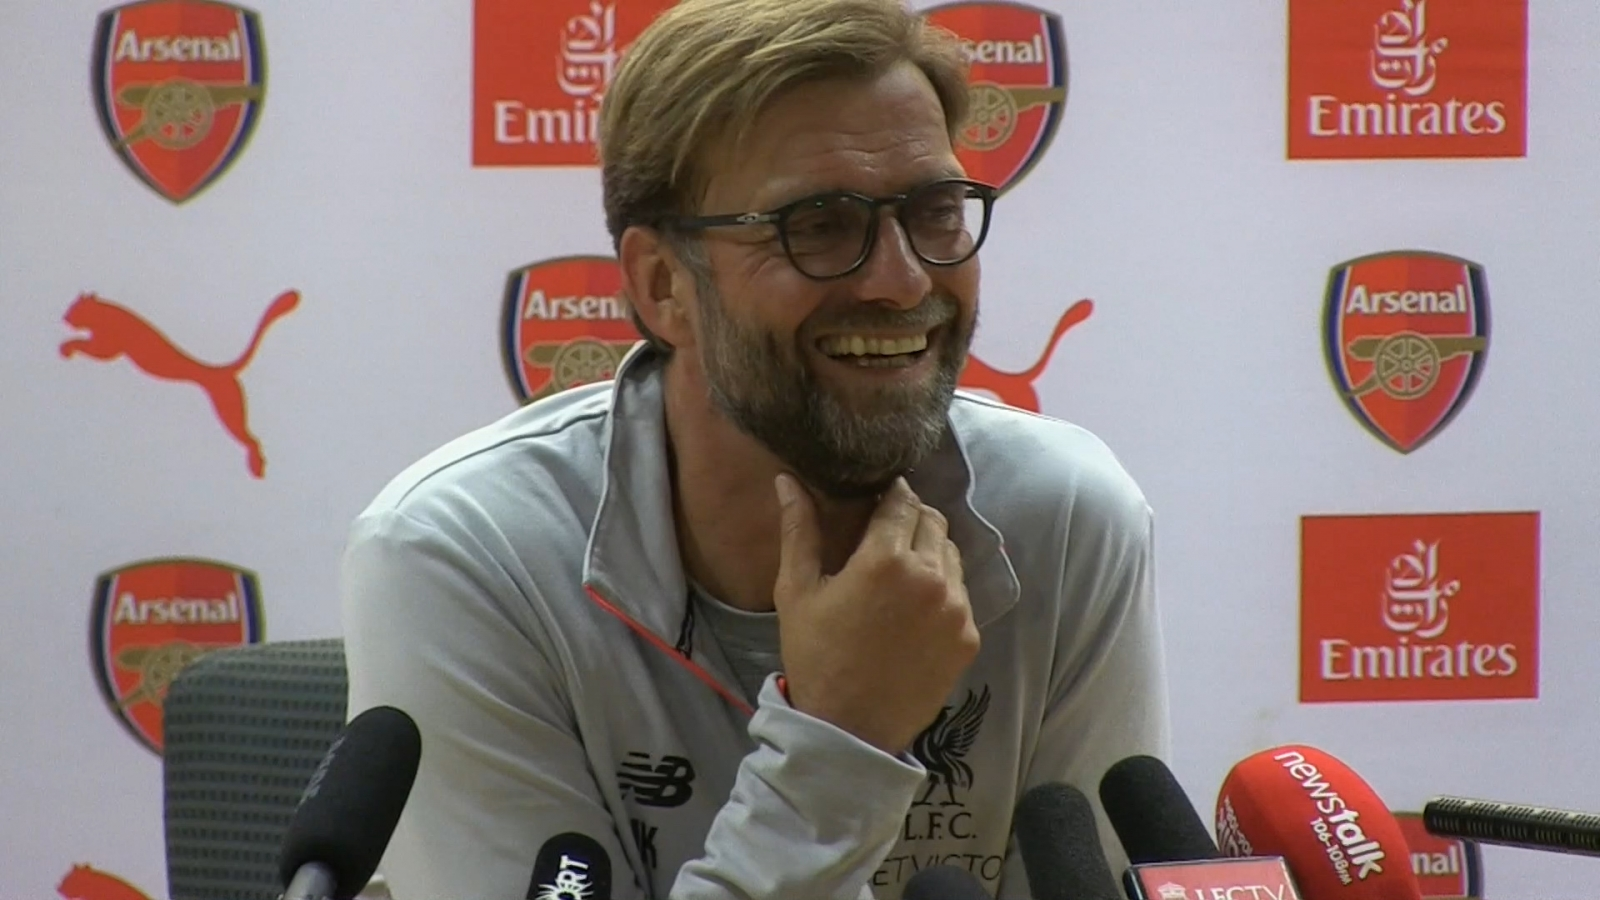 Jurgen Klopp's best moments at Liverpool